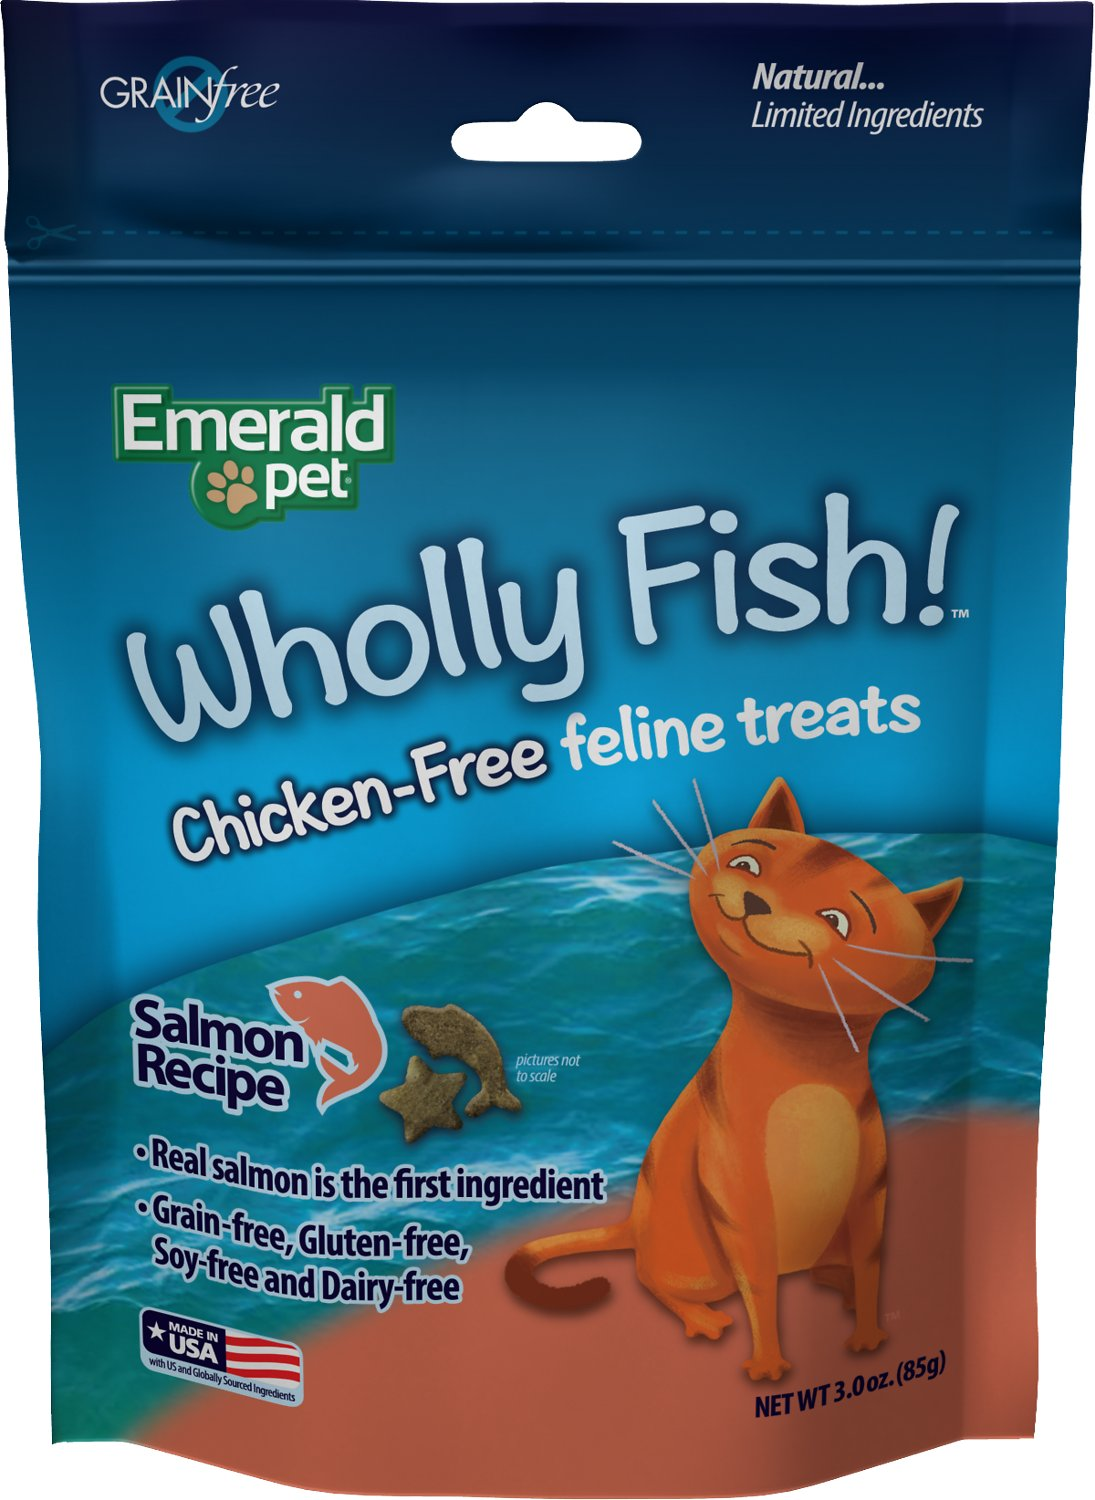 Emerald Pet Wholly Fish! Salmon Recipe Cat Treats, 3-oz